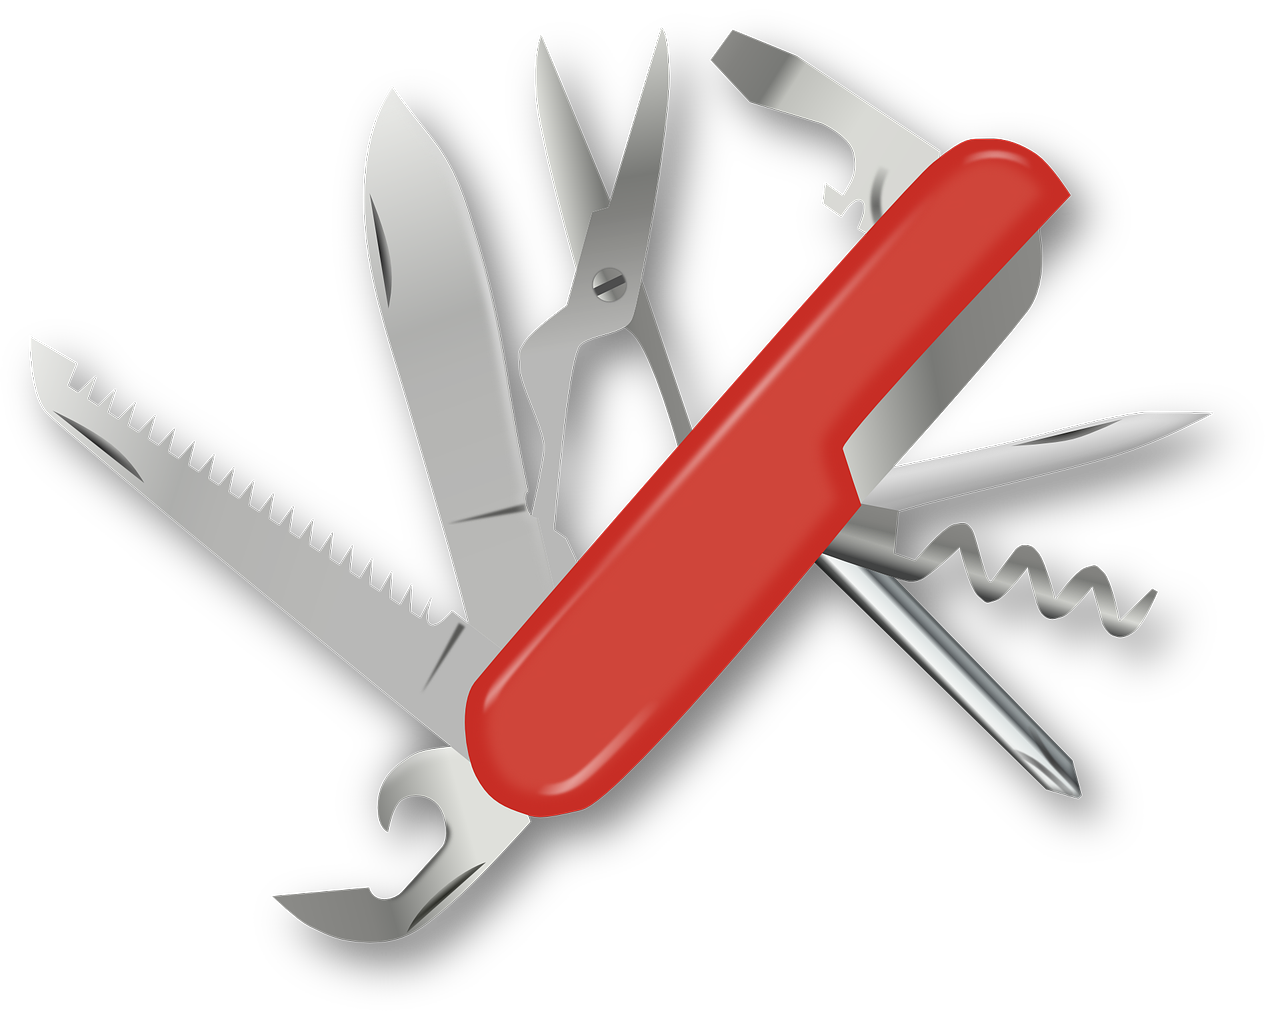 Ansible is a Swiss Army Knife for DevOps